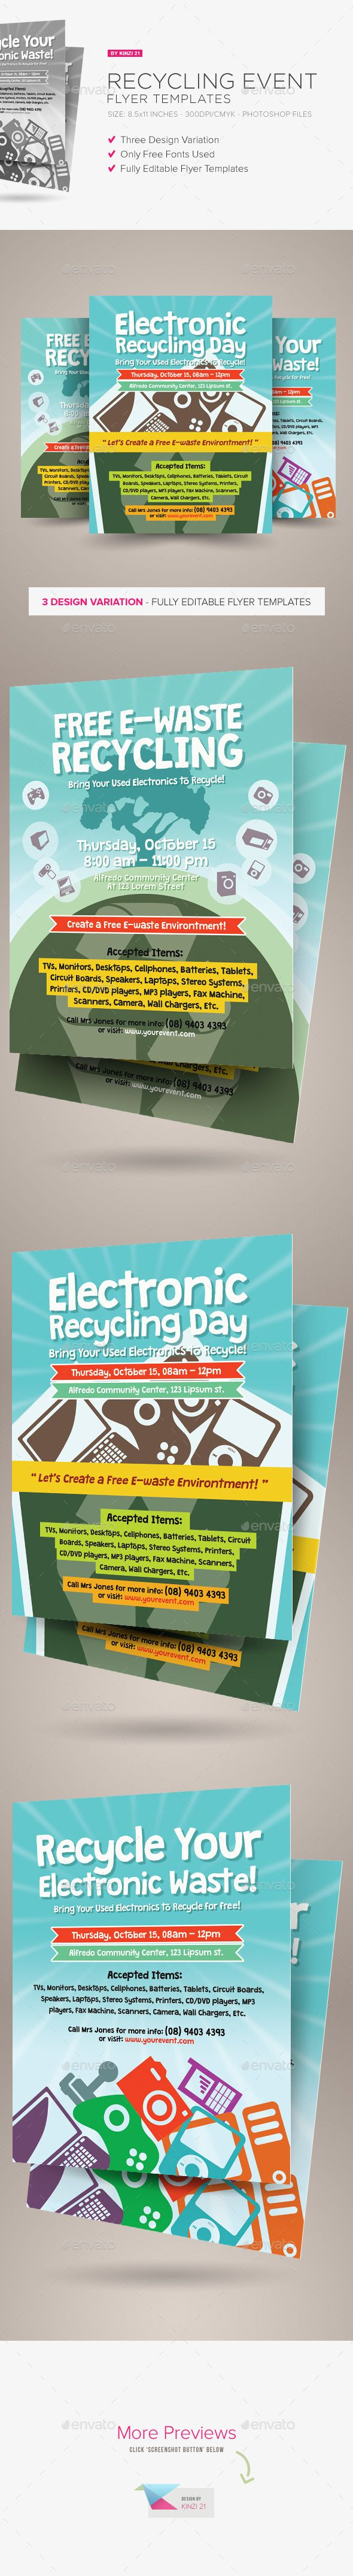 recycling event flyer template flyers posters events pinterest